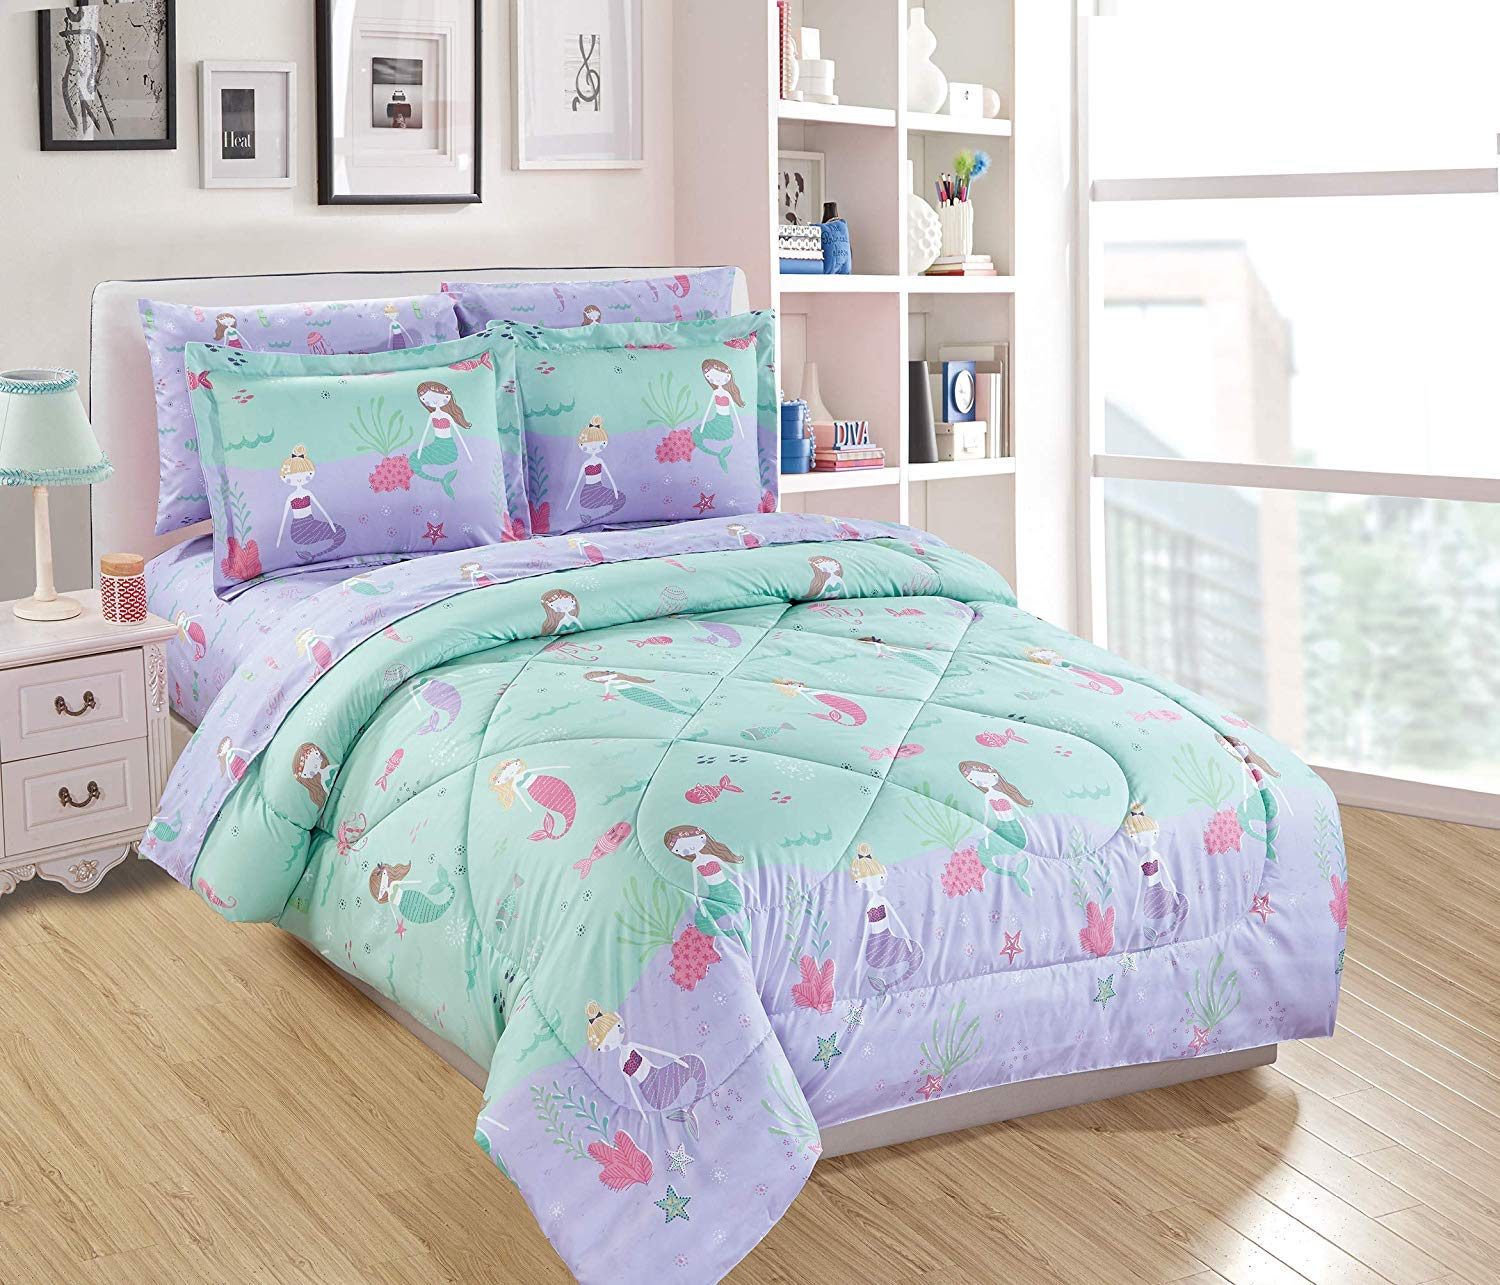 Elegant Home Multicolor Mermaid Sea Life Design 7 Piece Comforter Bedding Set for Girls/Kids Bed in a Bag with Sheet Set # Mermaid (Full)